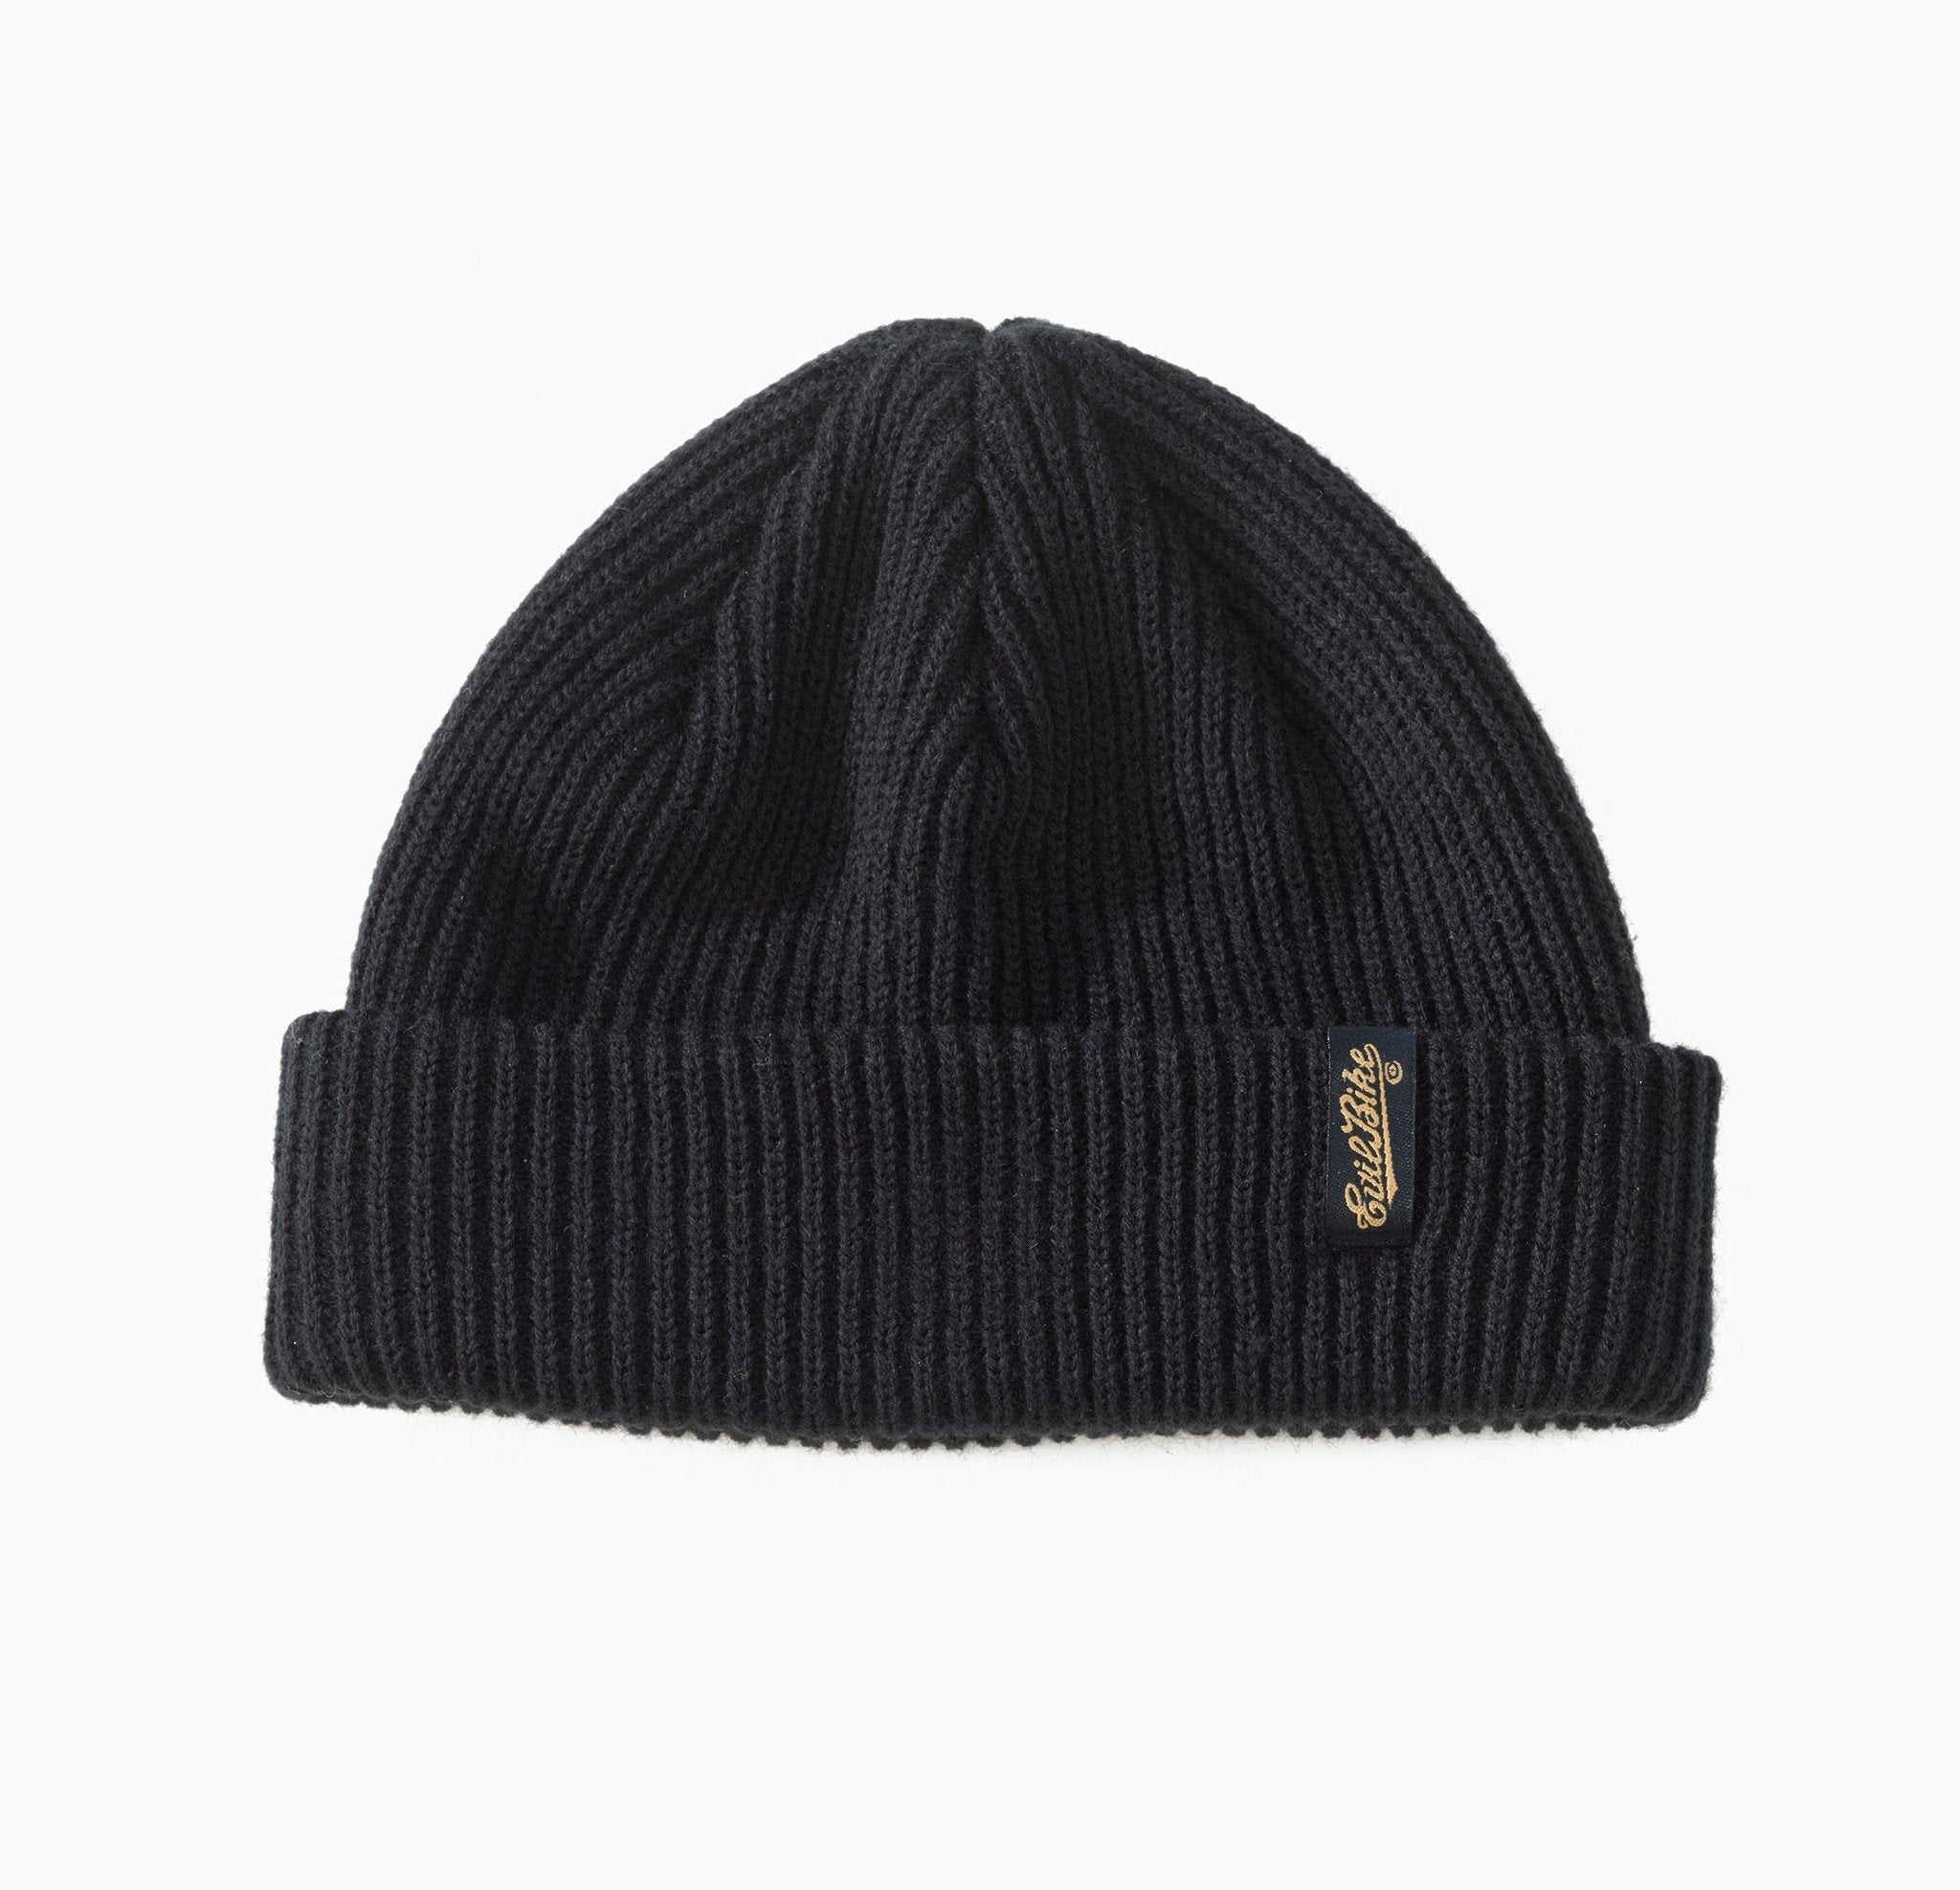 Hold Up Beanie Black